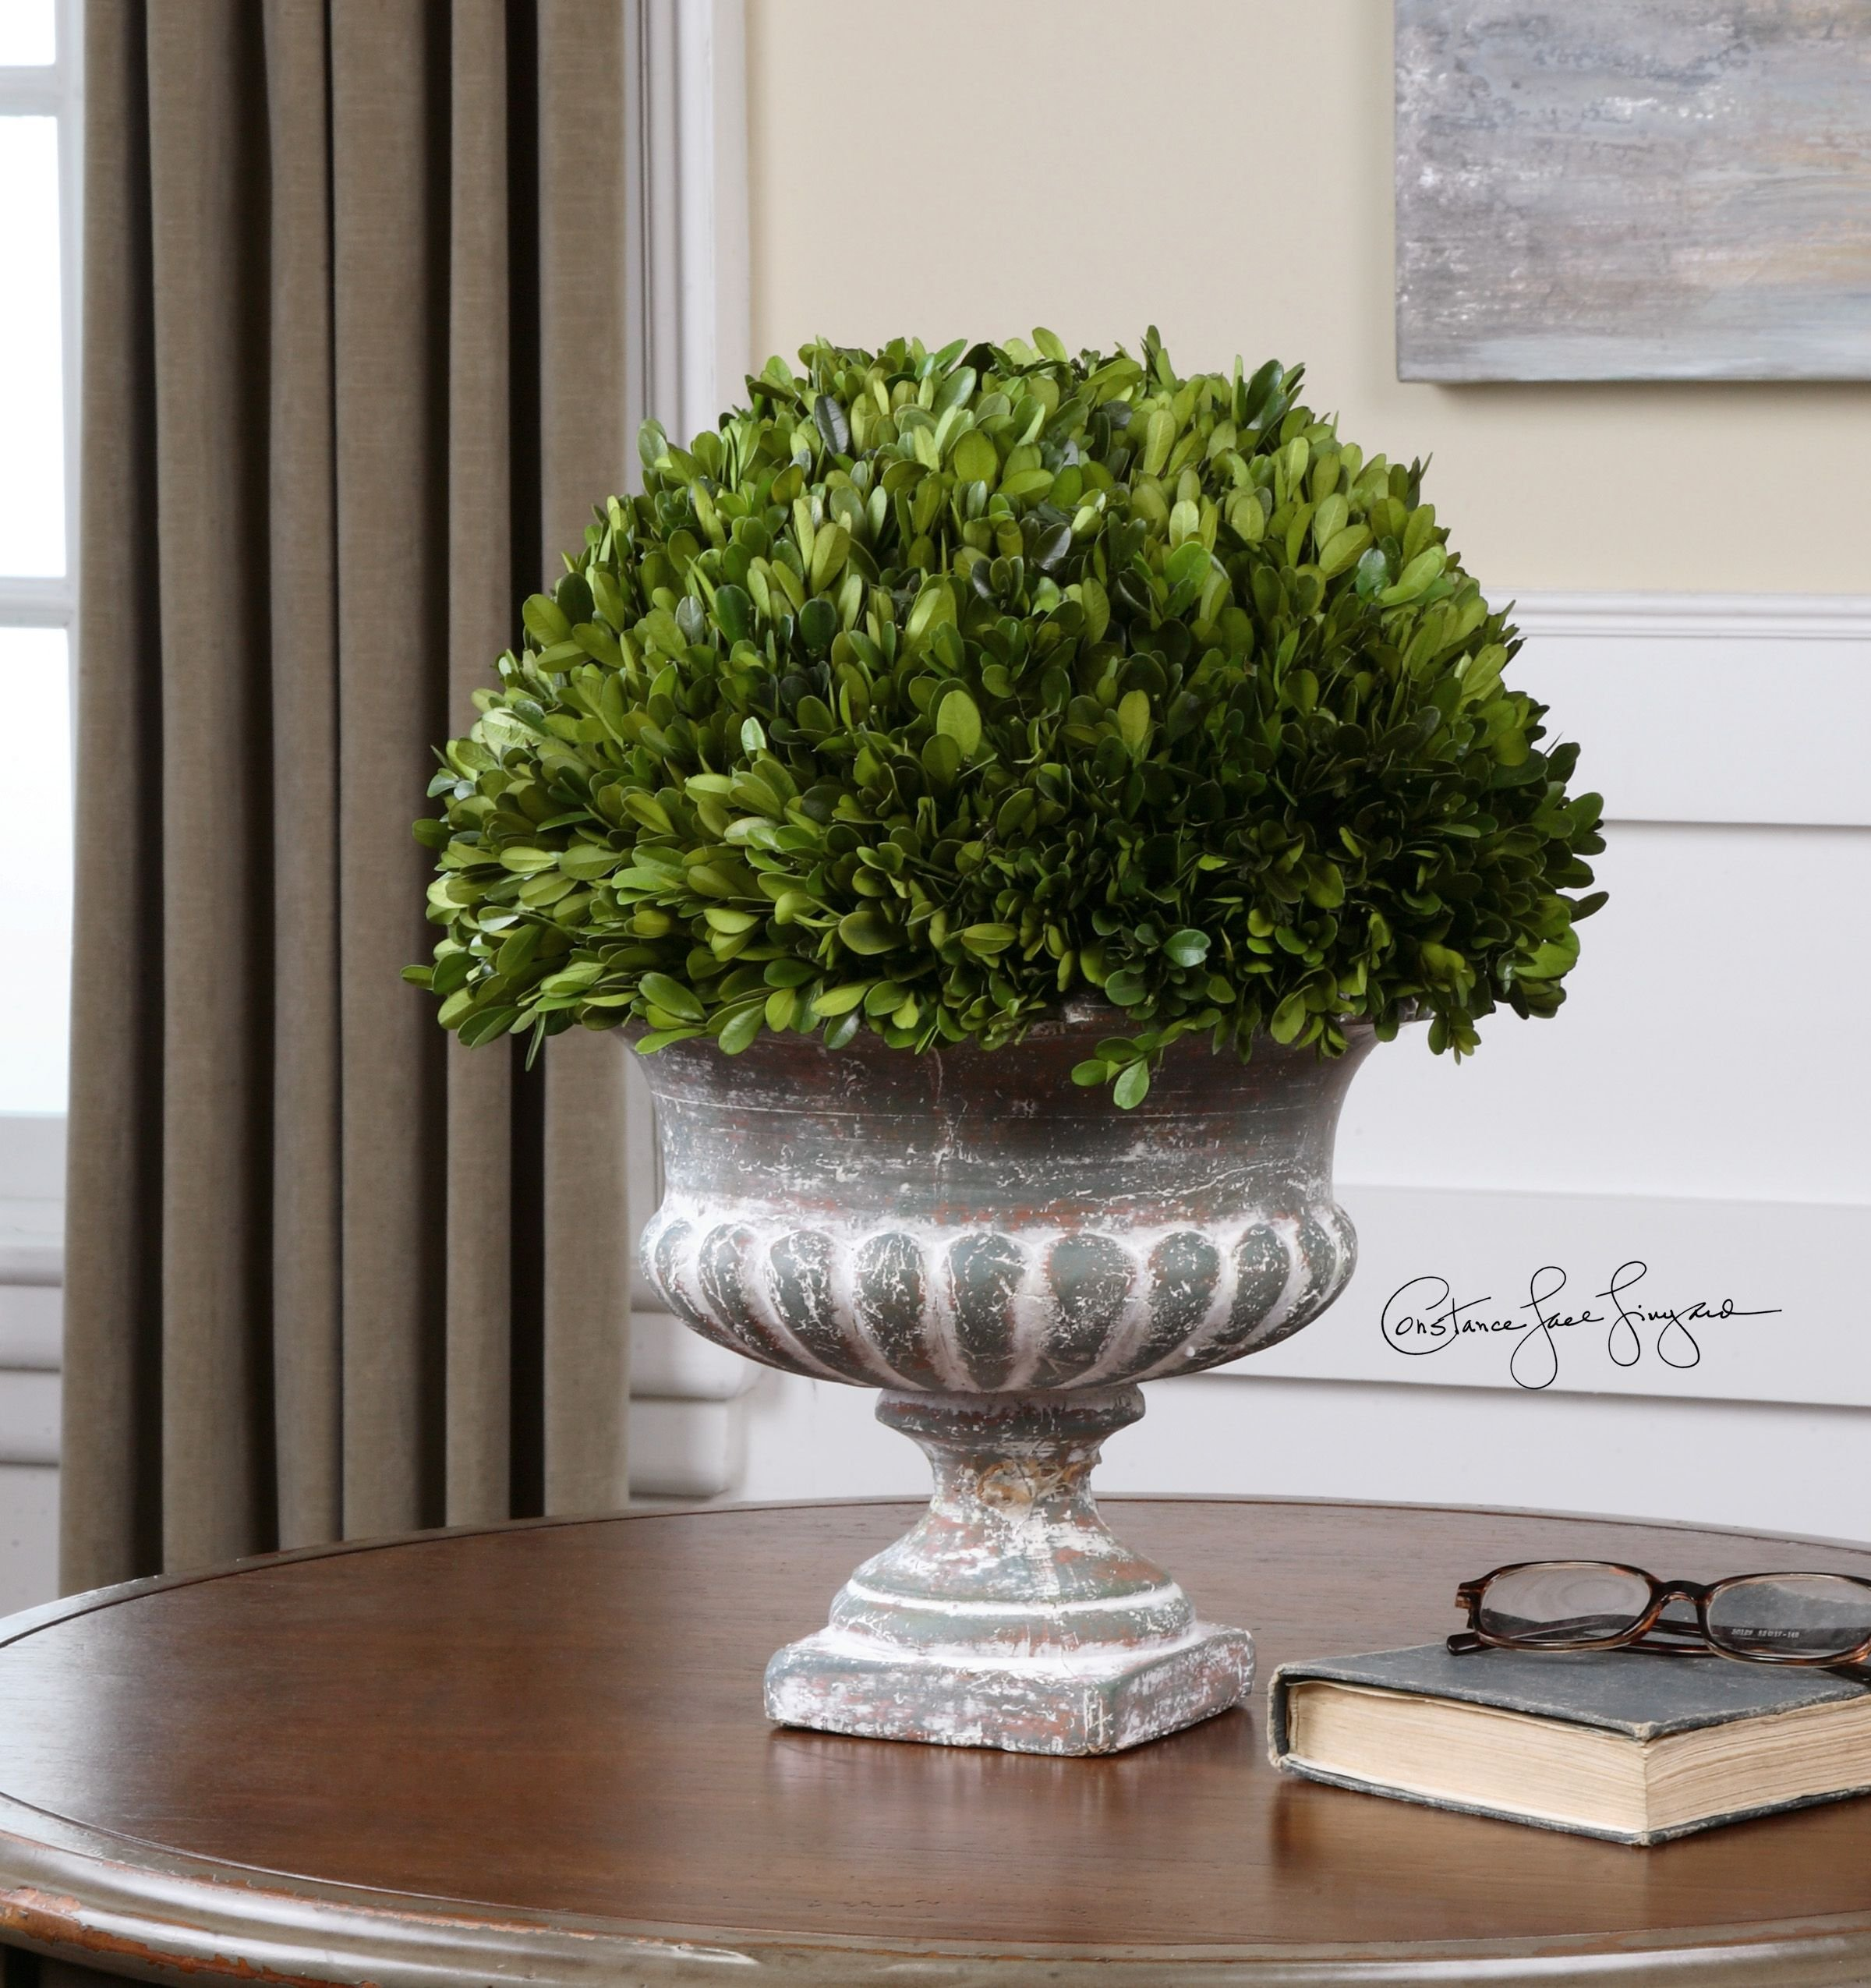 Uttermost Preserved Boxwood Garden Urn with Natural Foliage That Is Picked From Real Boxwood Plants by UTMOST MFG (Image #2)